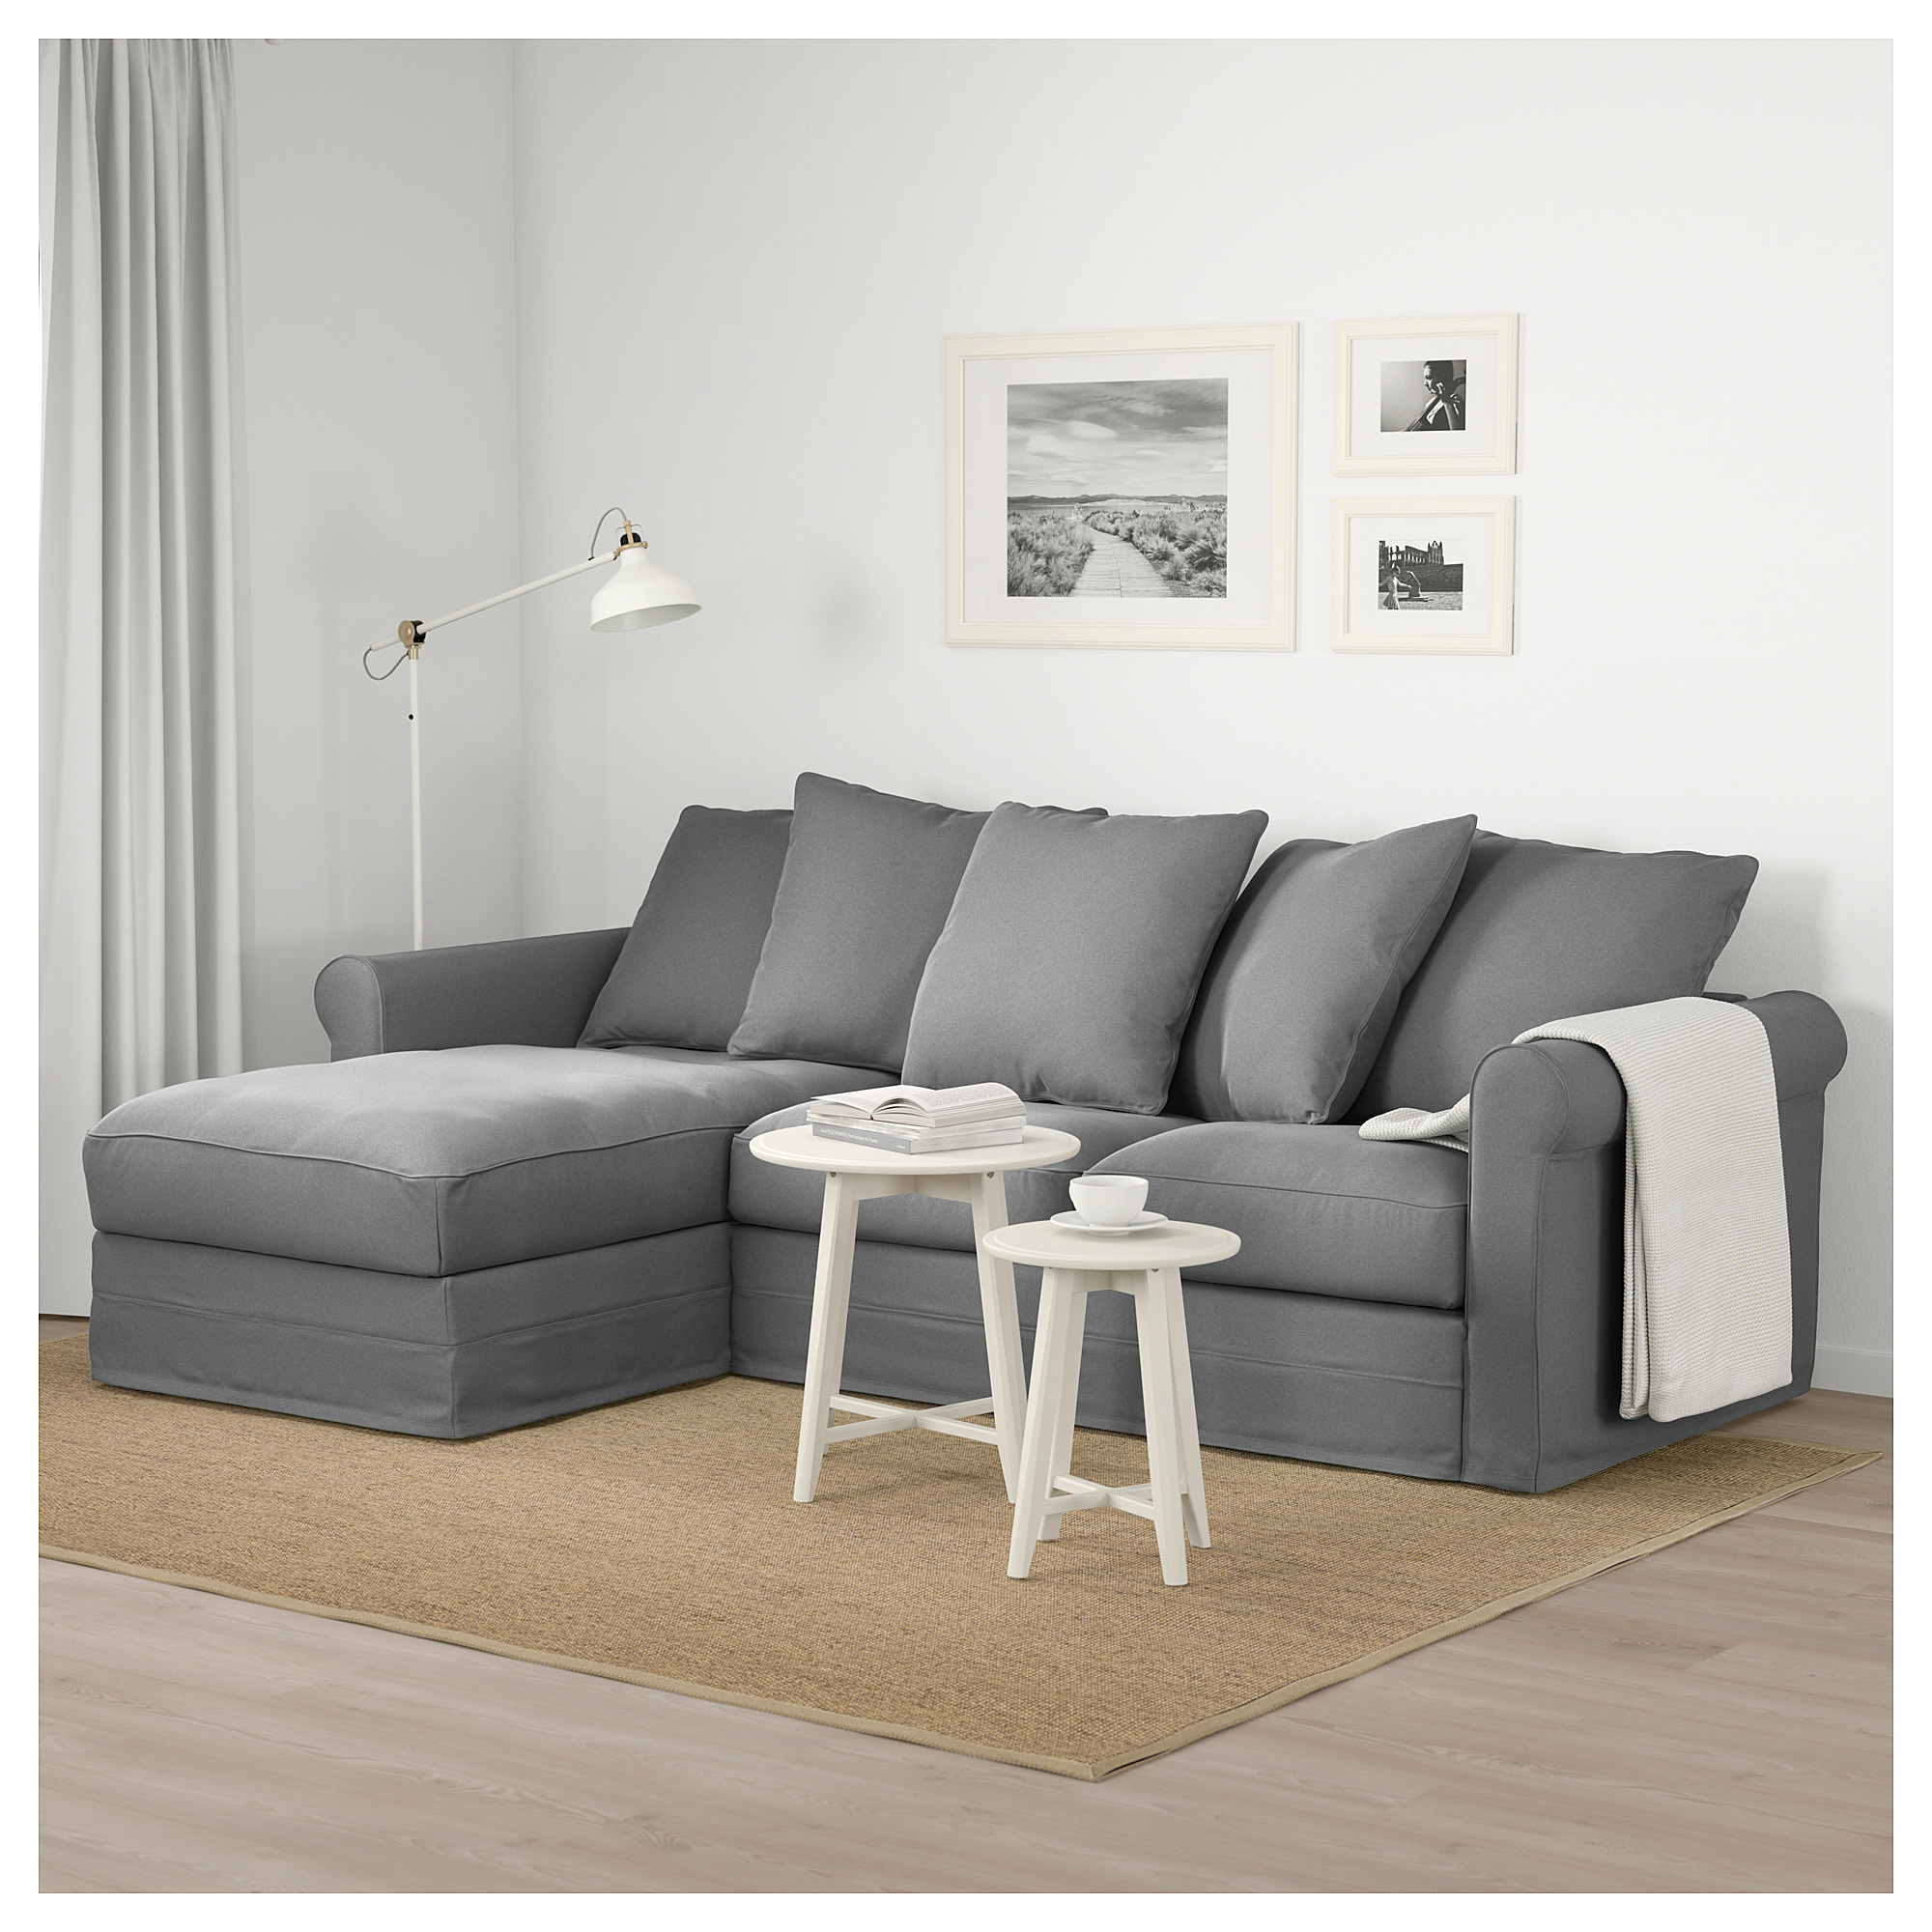 gr nlid sofa with chaise ljungen medium gray products pinterest gray and house. Black Bedroom Furniture Sets. Home Design Ideas